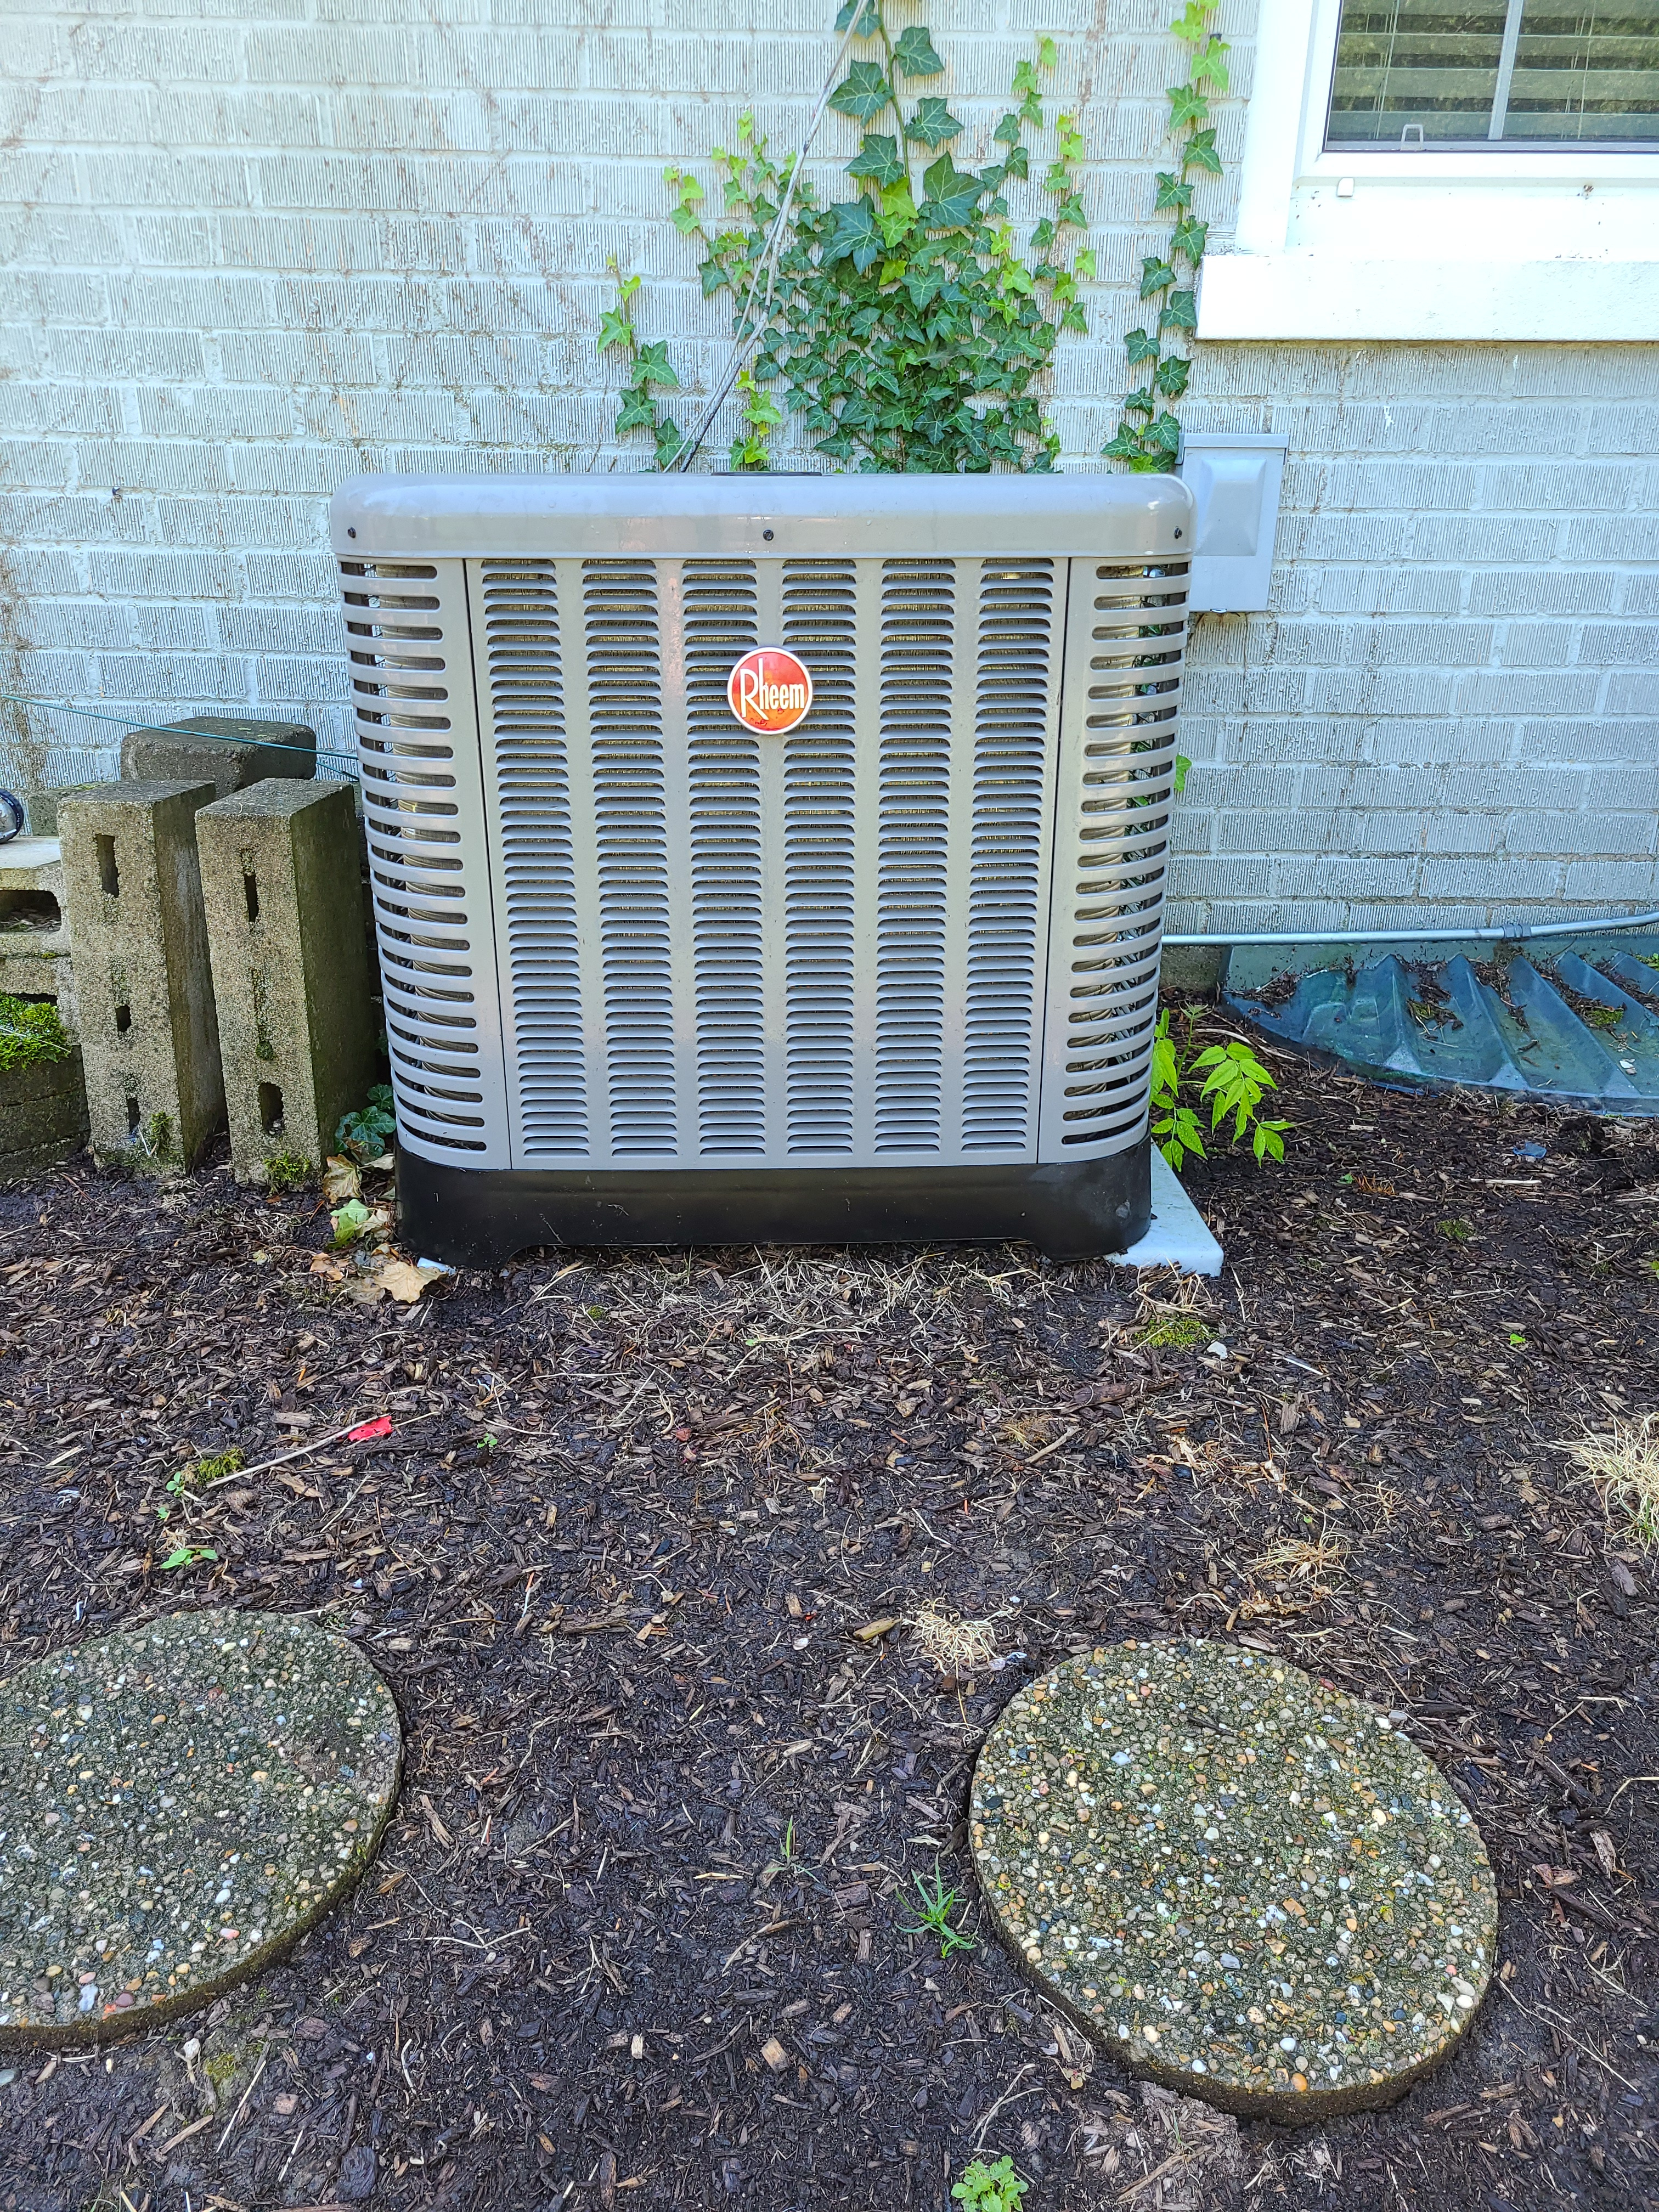 Be sure you Rheem is able to keep you cool this summer and schedule a maintenance with American Weathermakers.